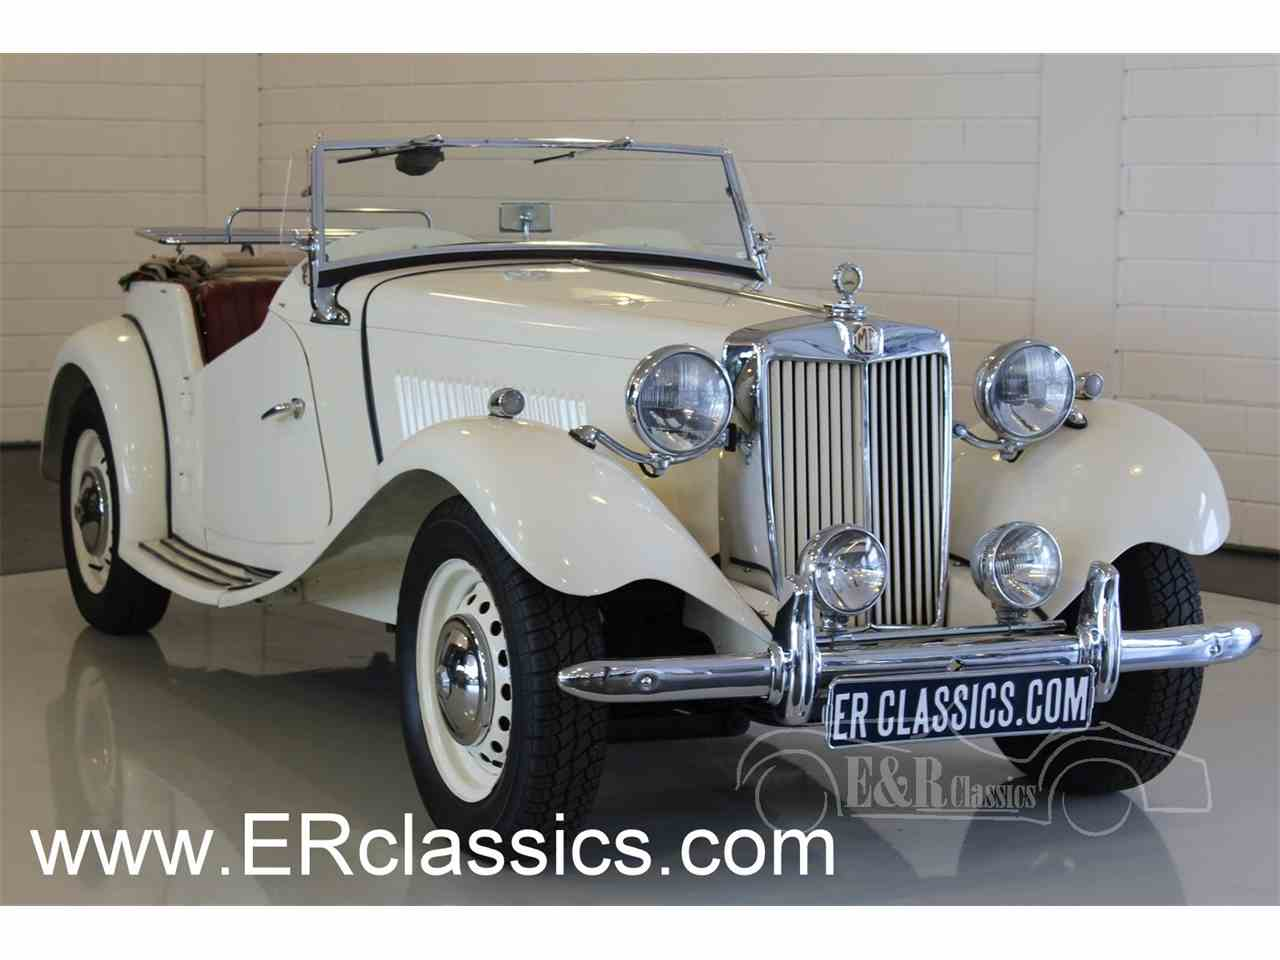 Large Picture of '52 TD located in Noord Brabant - $39,550.00 Offered by E & R Classics - LV6Z